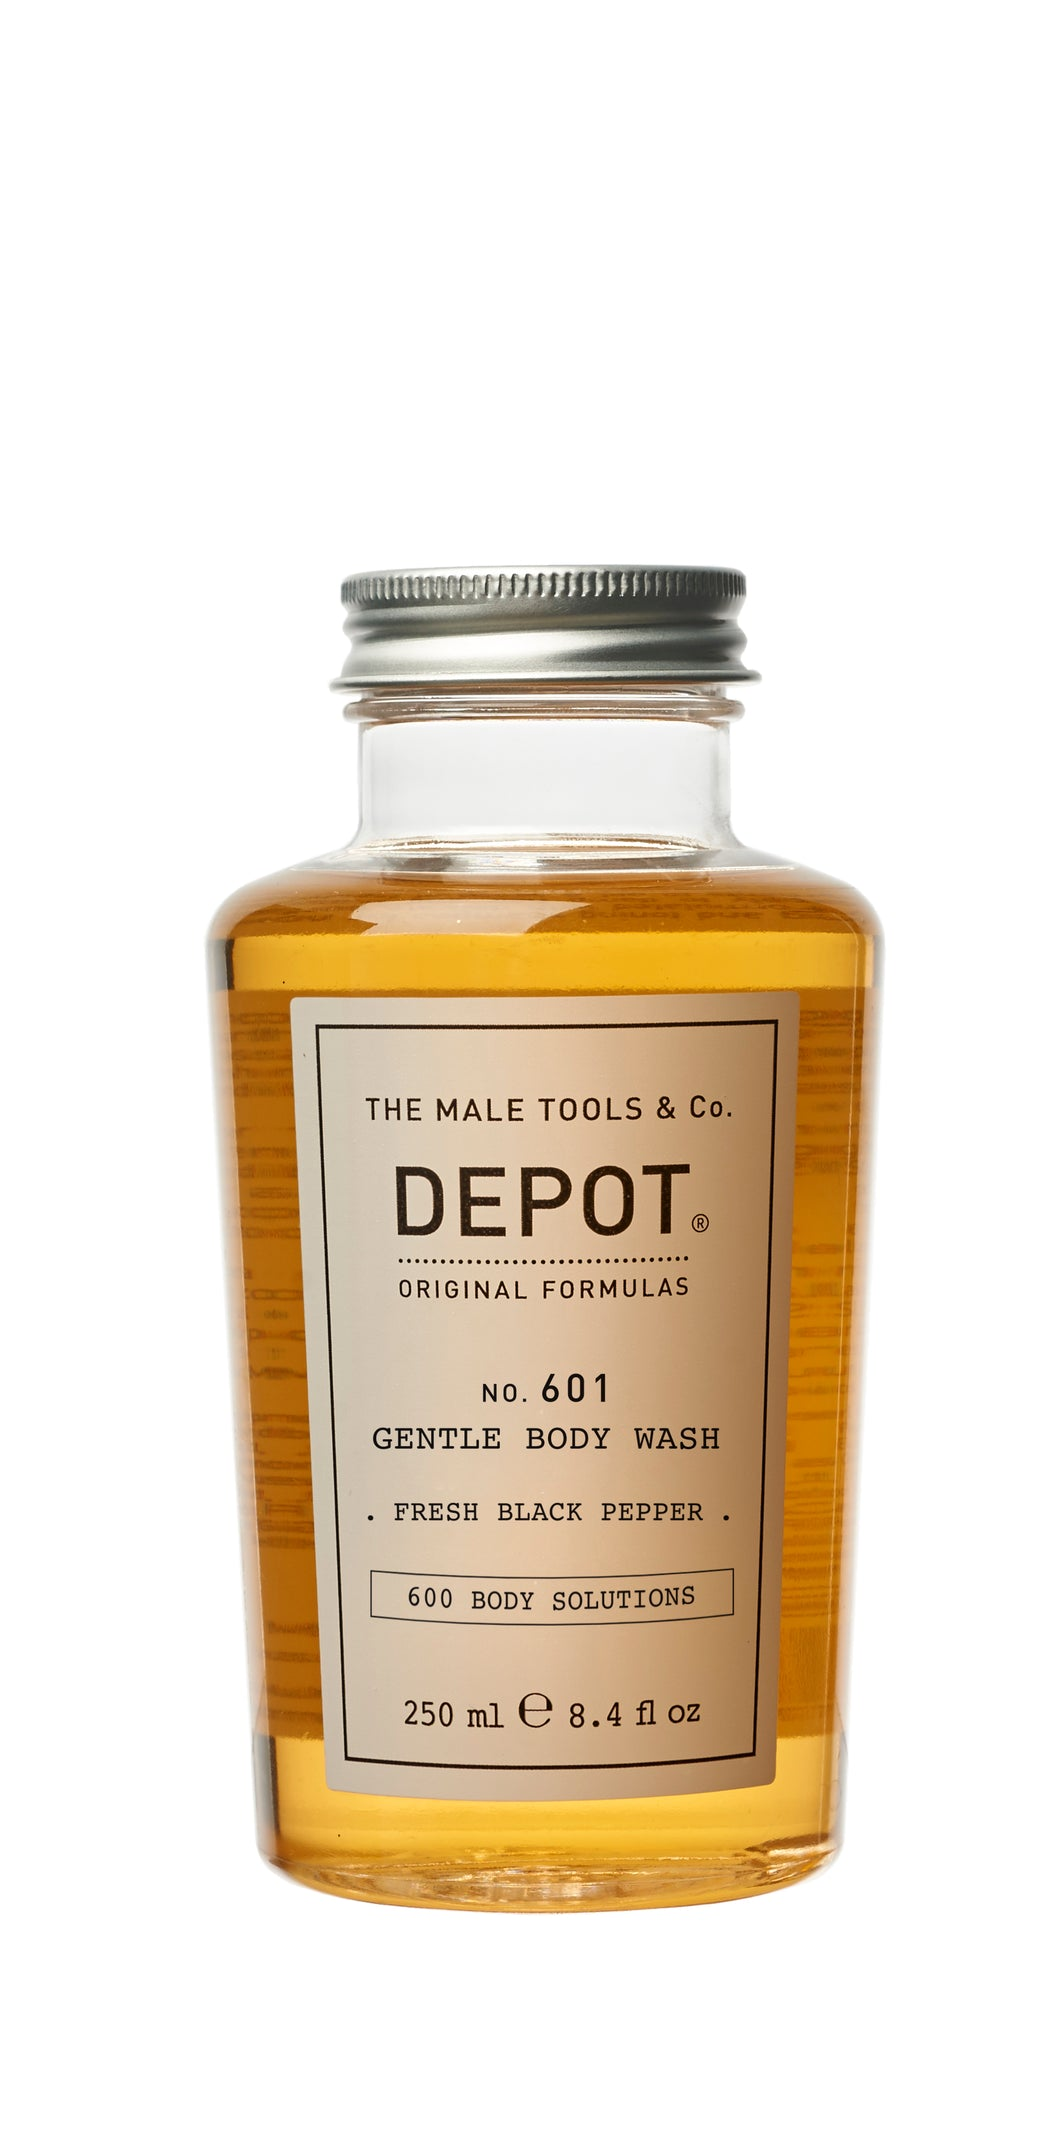 DEPOT MALE TOOL NO. 601 GENTLE BODY WASH Black Pepper